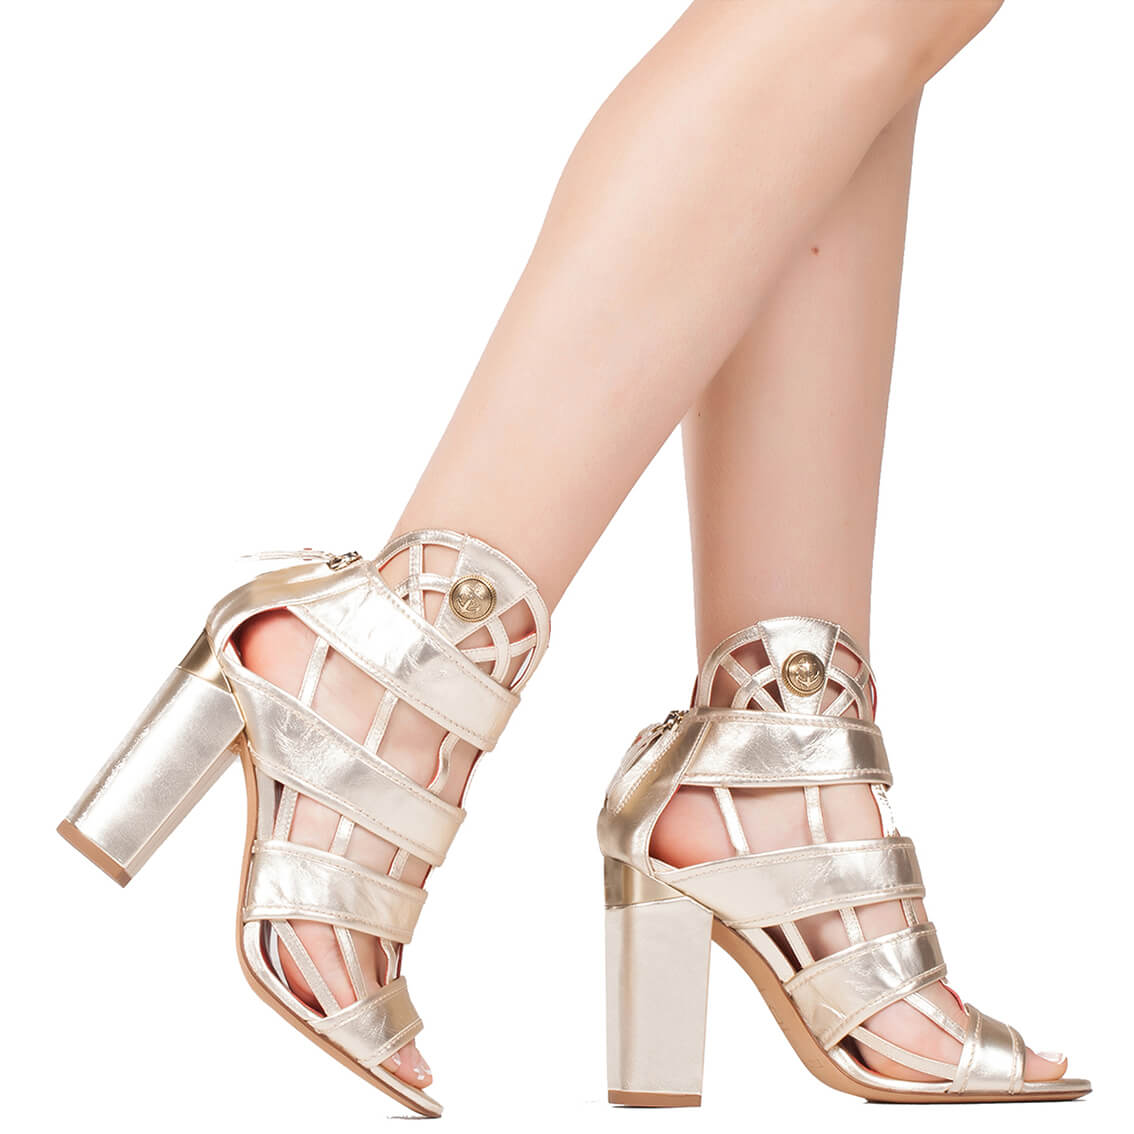 51ab32d66b42 Block heel cage sandals in metallic leather - shoe store Pura Lopez ...